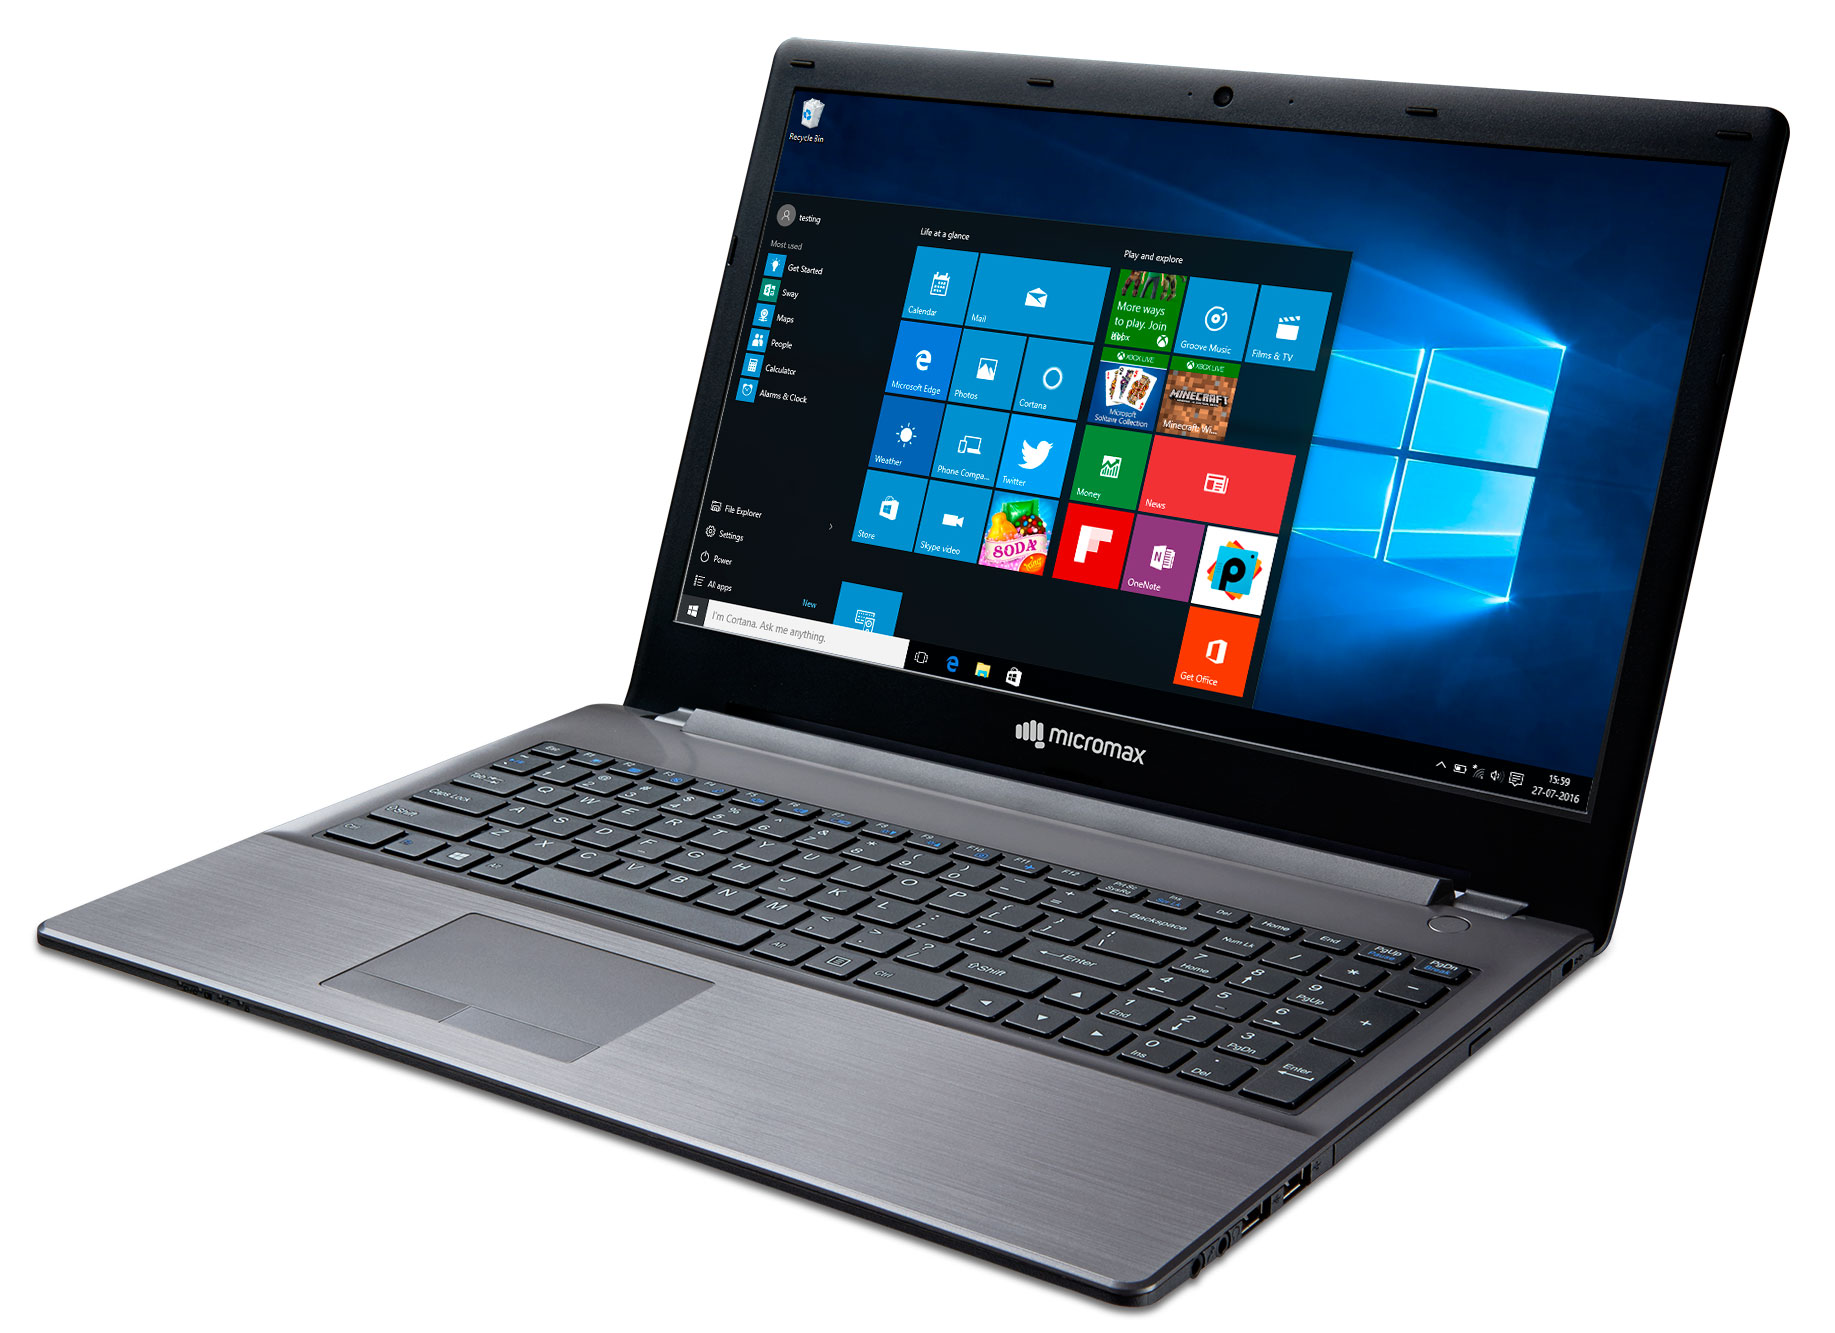 Micromax Announces New 15 Inch Windows 10 Laptop Starting